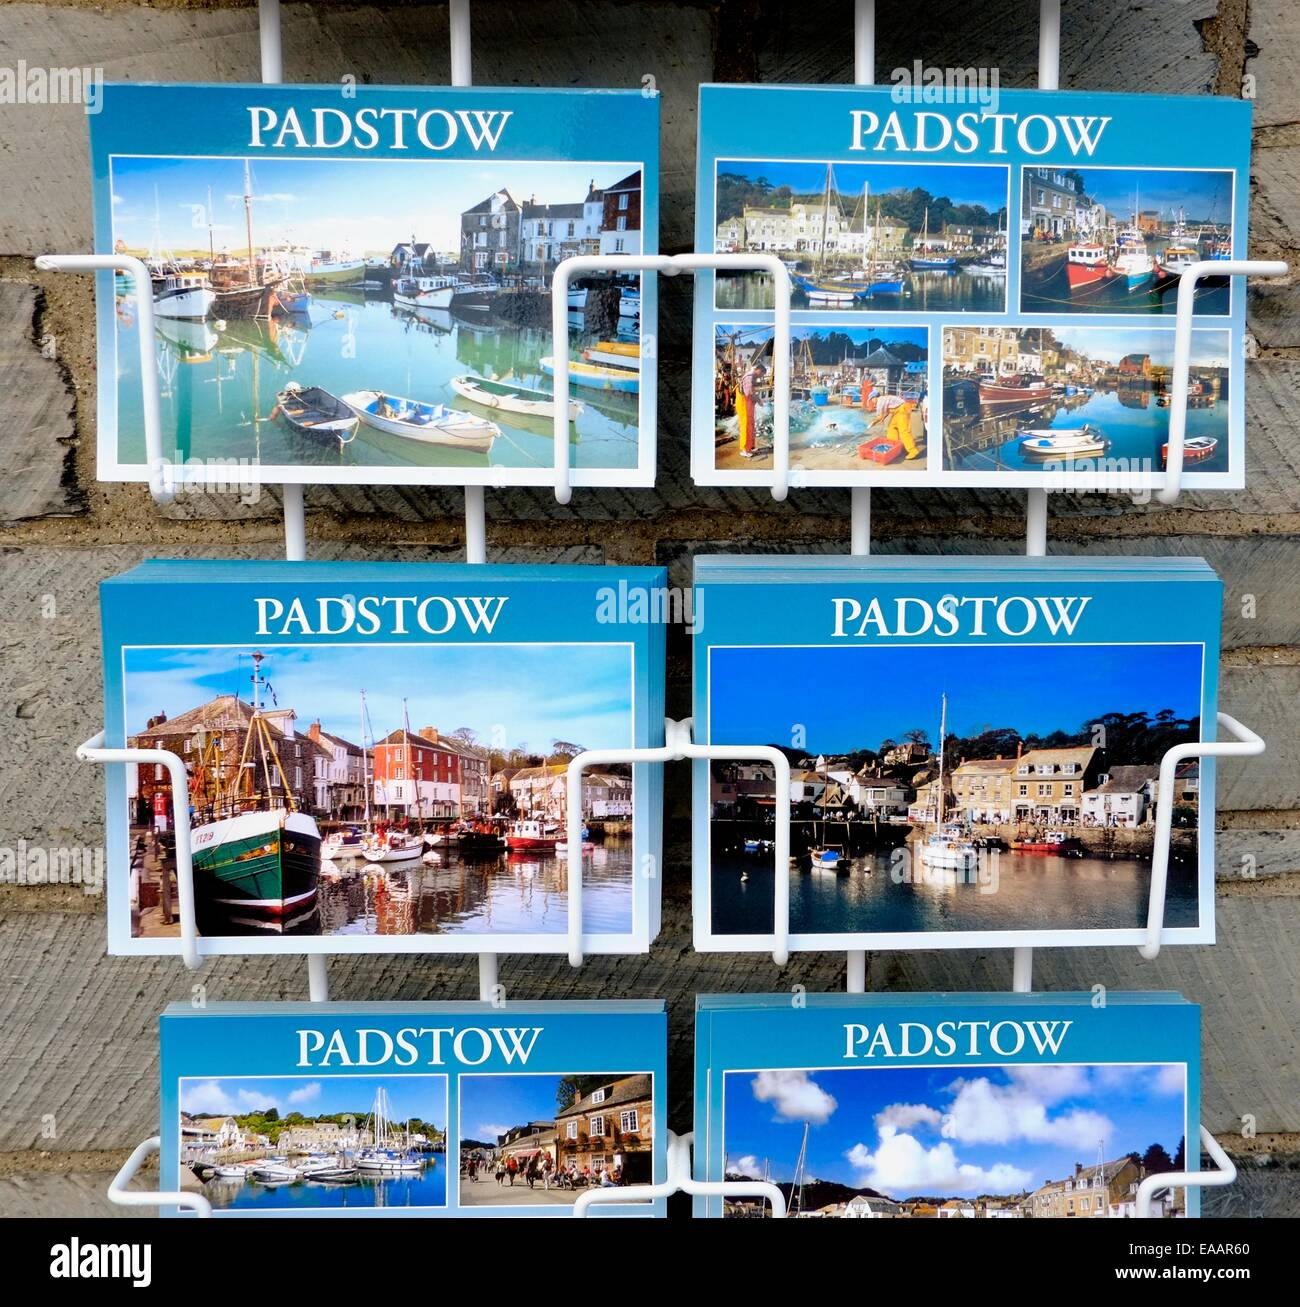 Souvenir postcards on sale outside a shop in Padstow Cornwall England uk - Stock Image